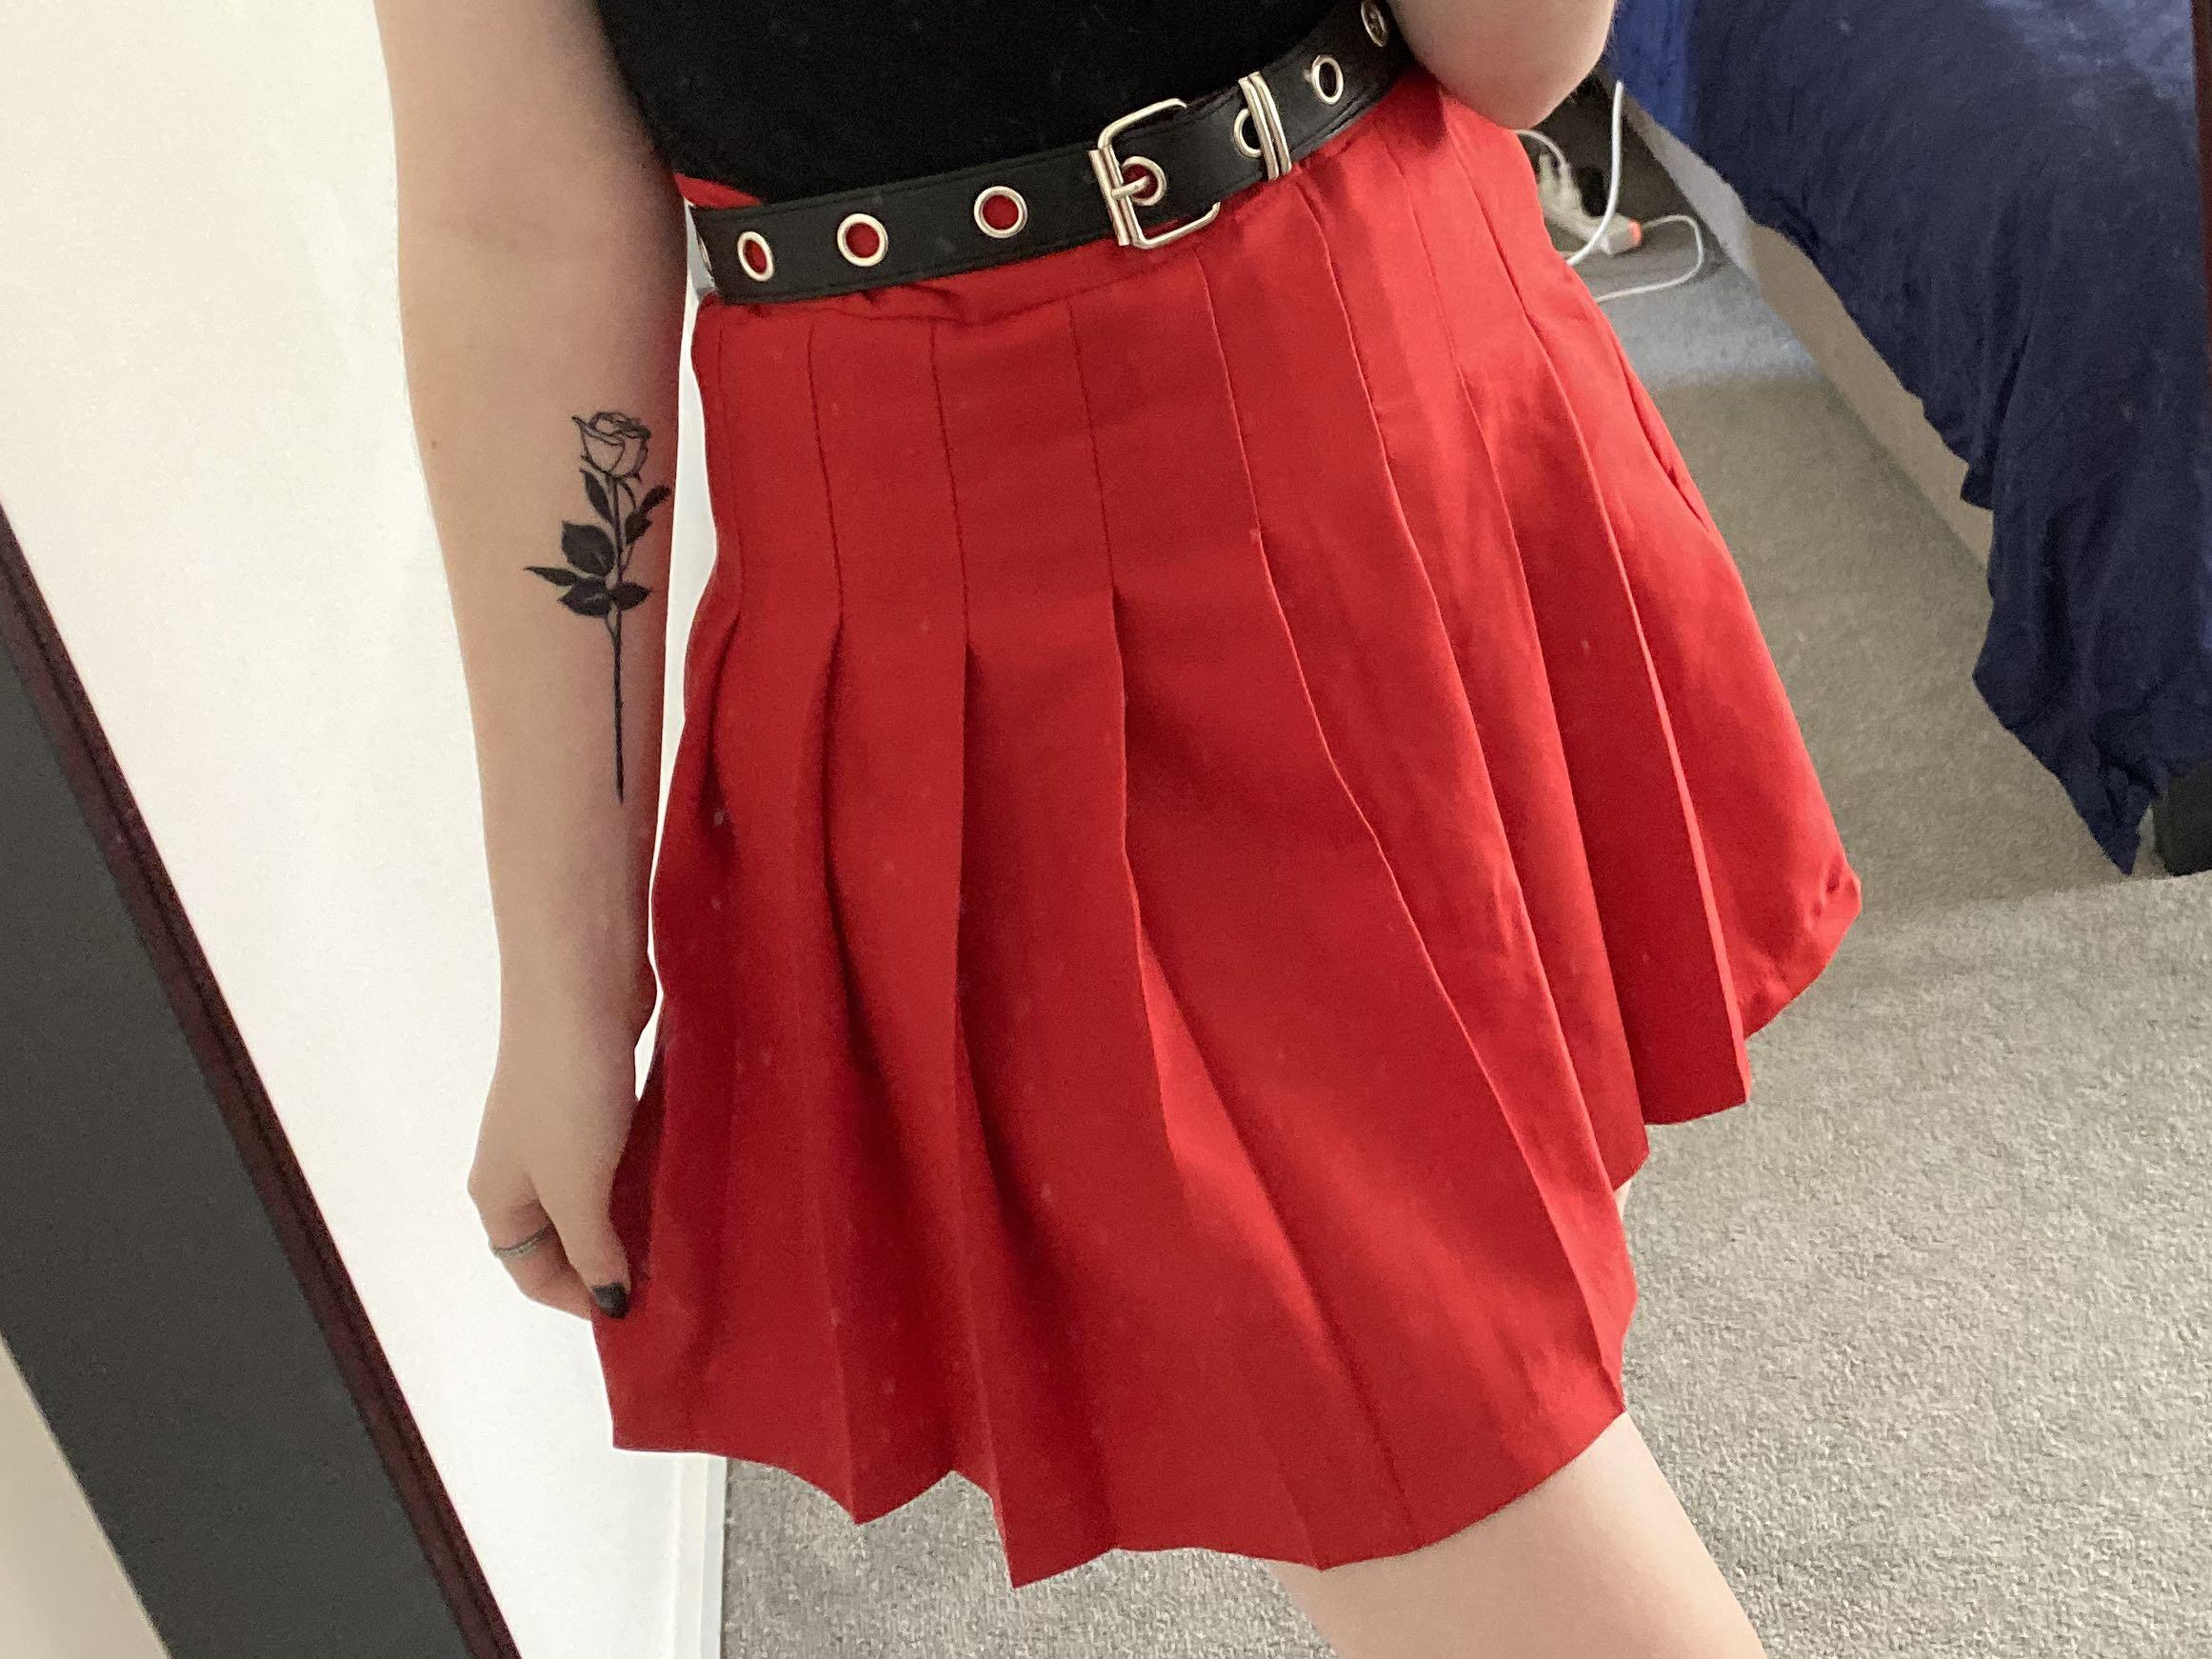 Red tennis skirt